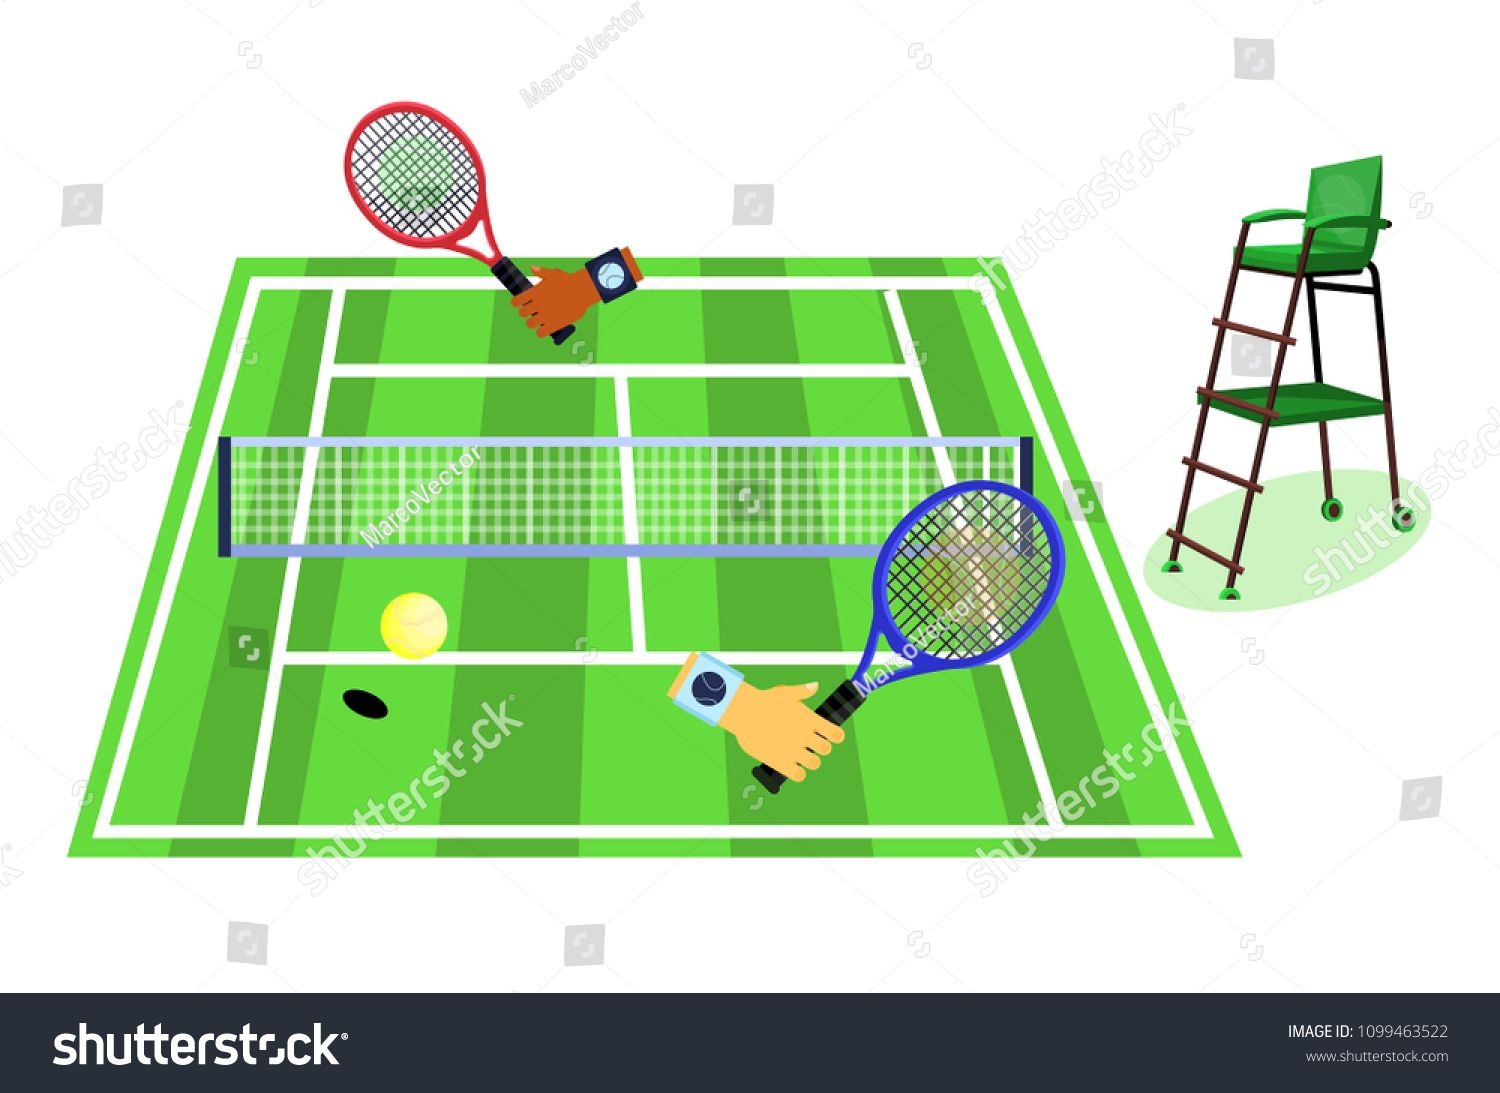 Tennis Grass Court Grass Tennis Court With Playing Two Players And Referee Flat Cartoons Style Vector Illustration Cartoon Styles Tennis Court Tennis Racquet